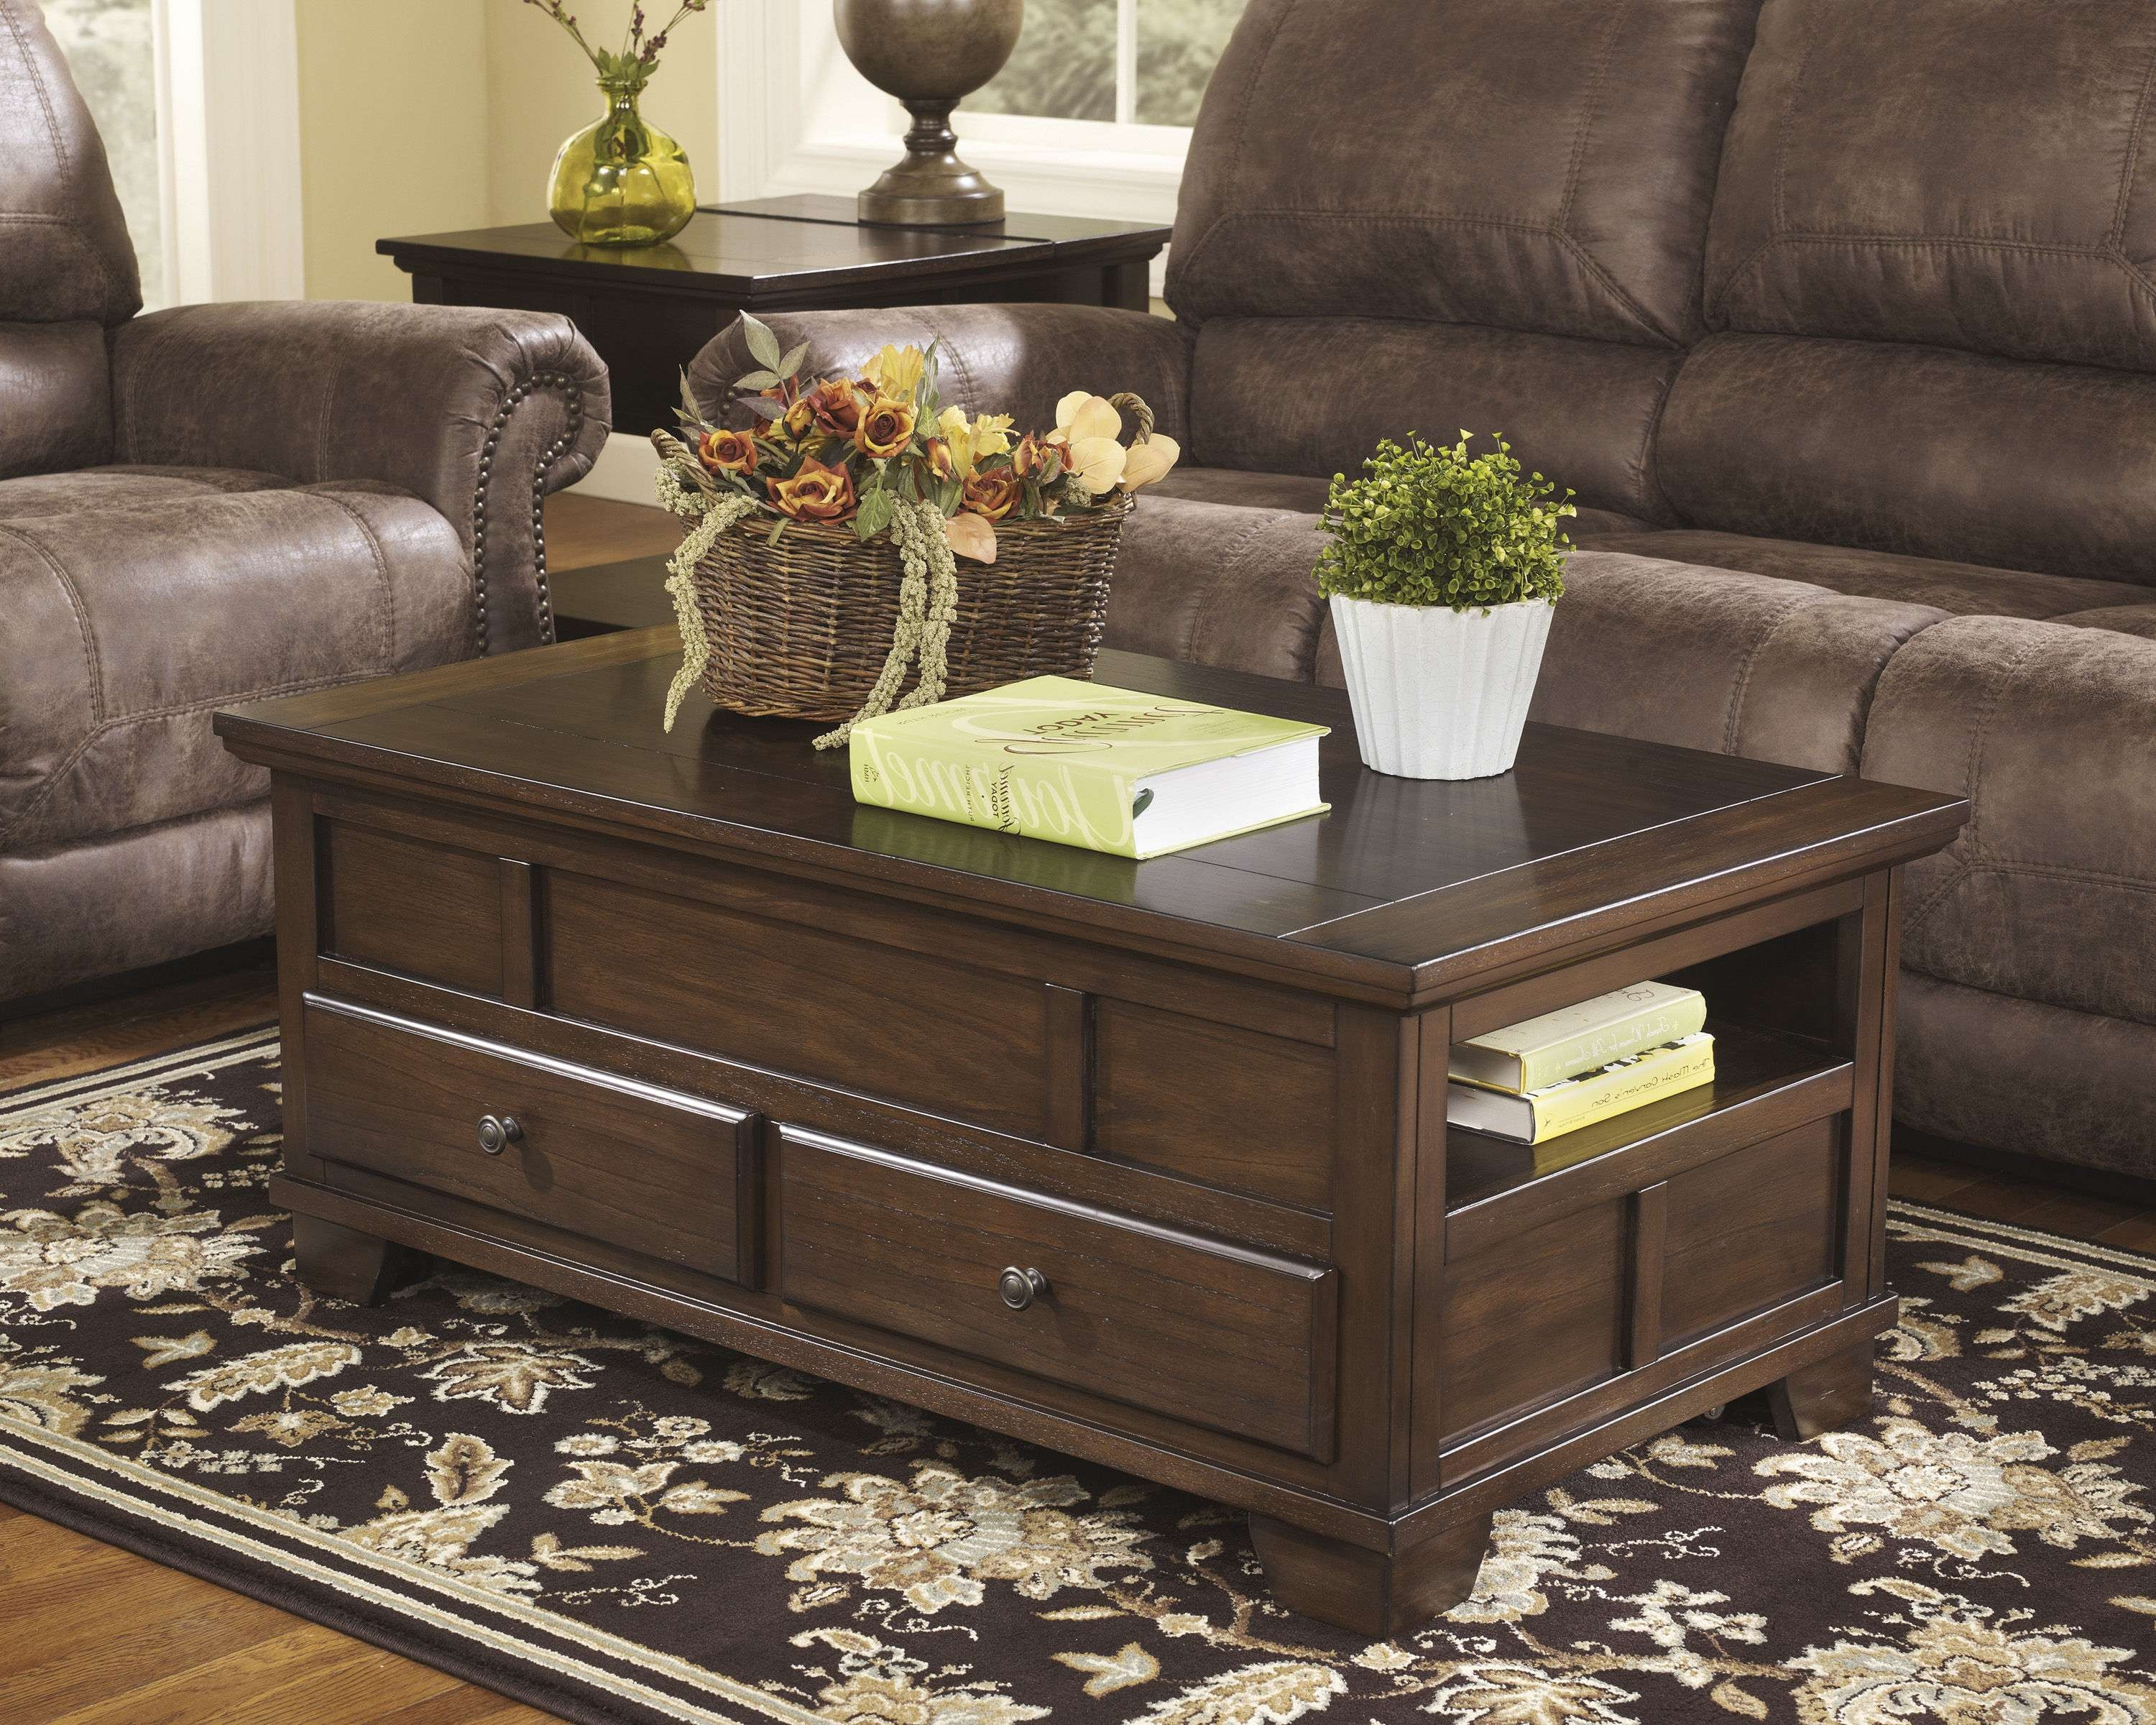 Most Popular Lift Top Coffee Table Furniture Regarding Ashley Furniture Gately Brown Lift Top Cocktail Table (View 7 of 20)